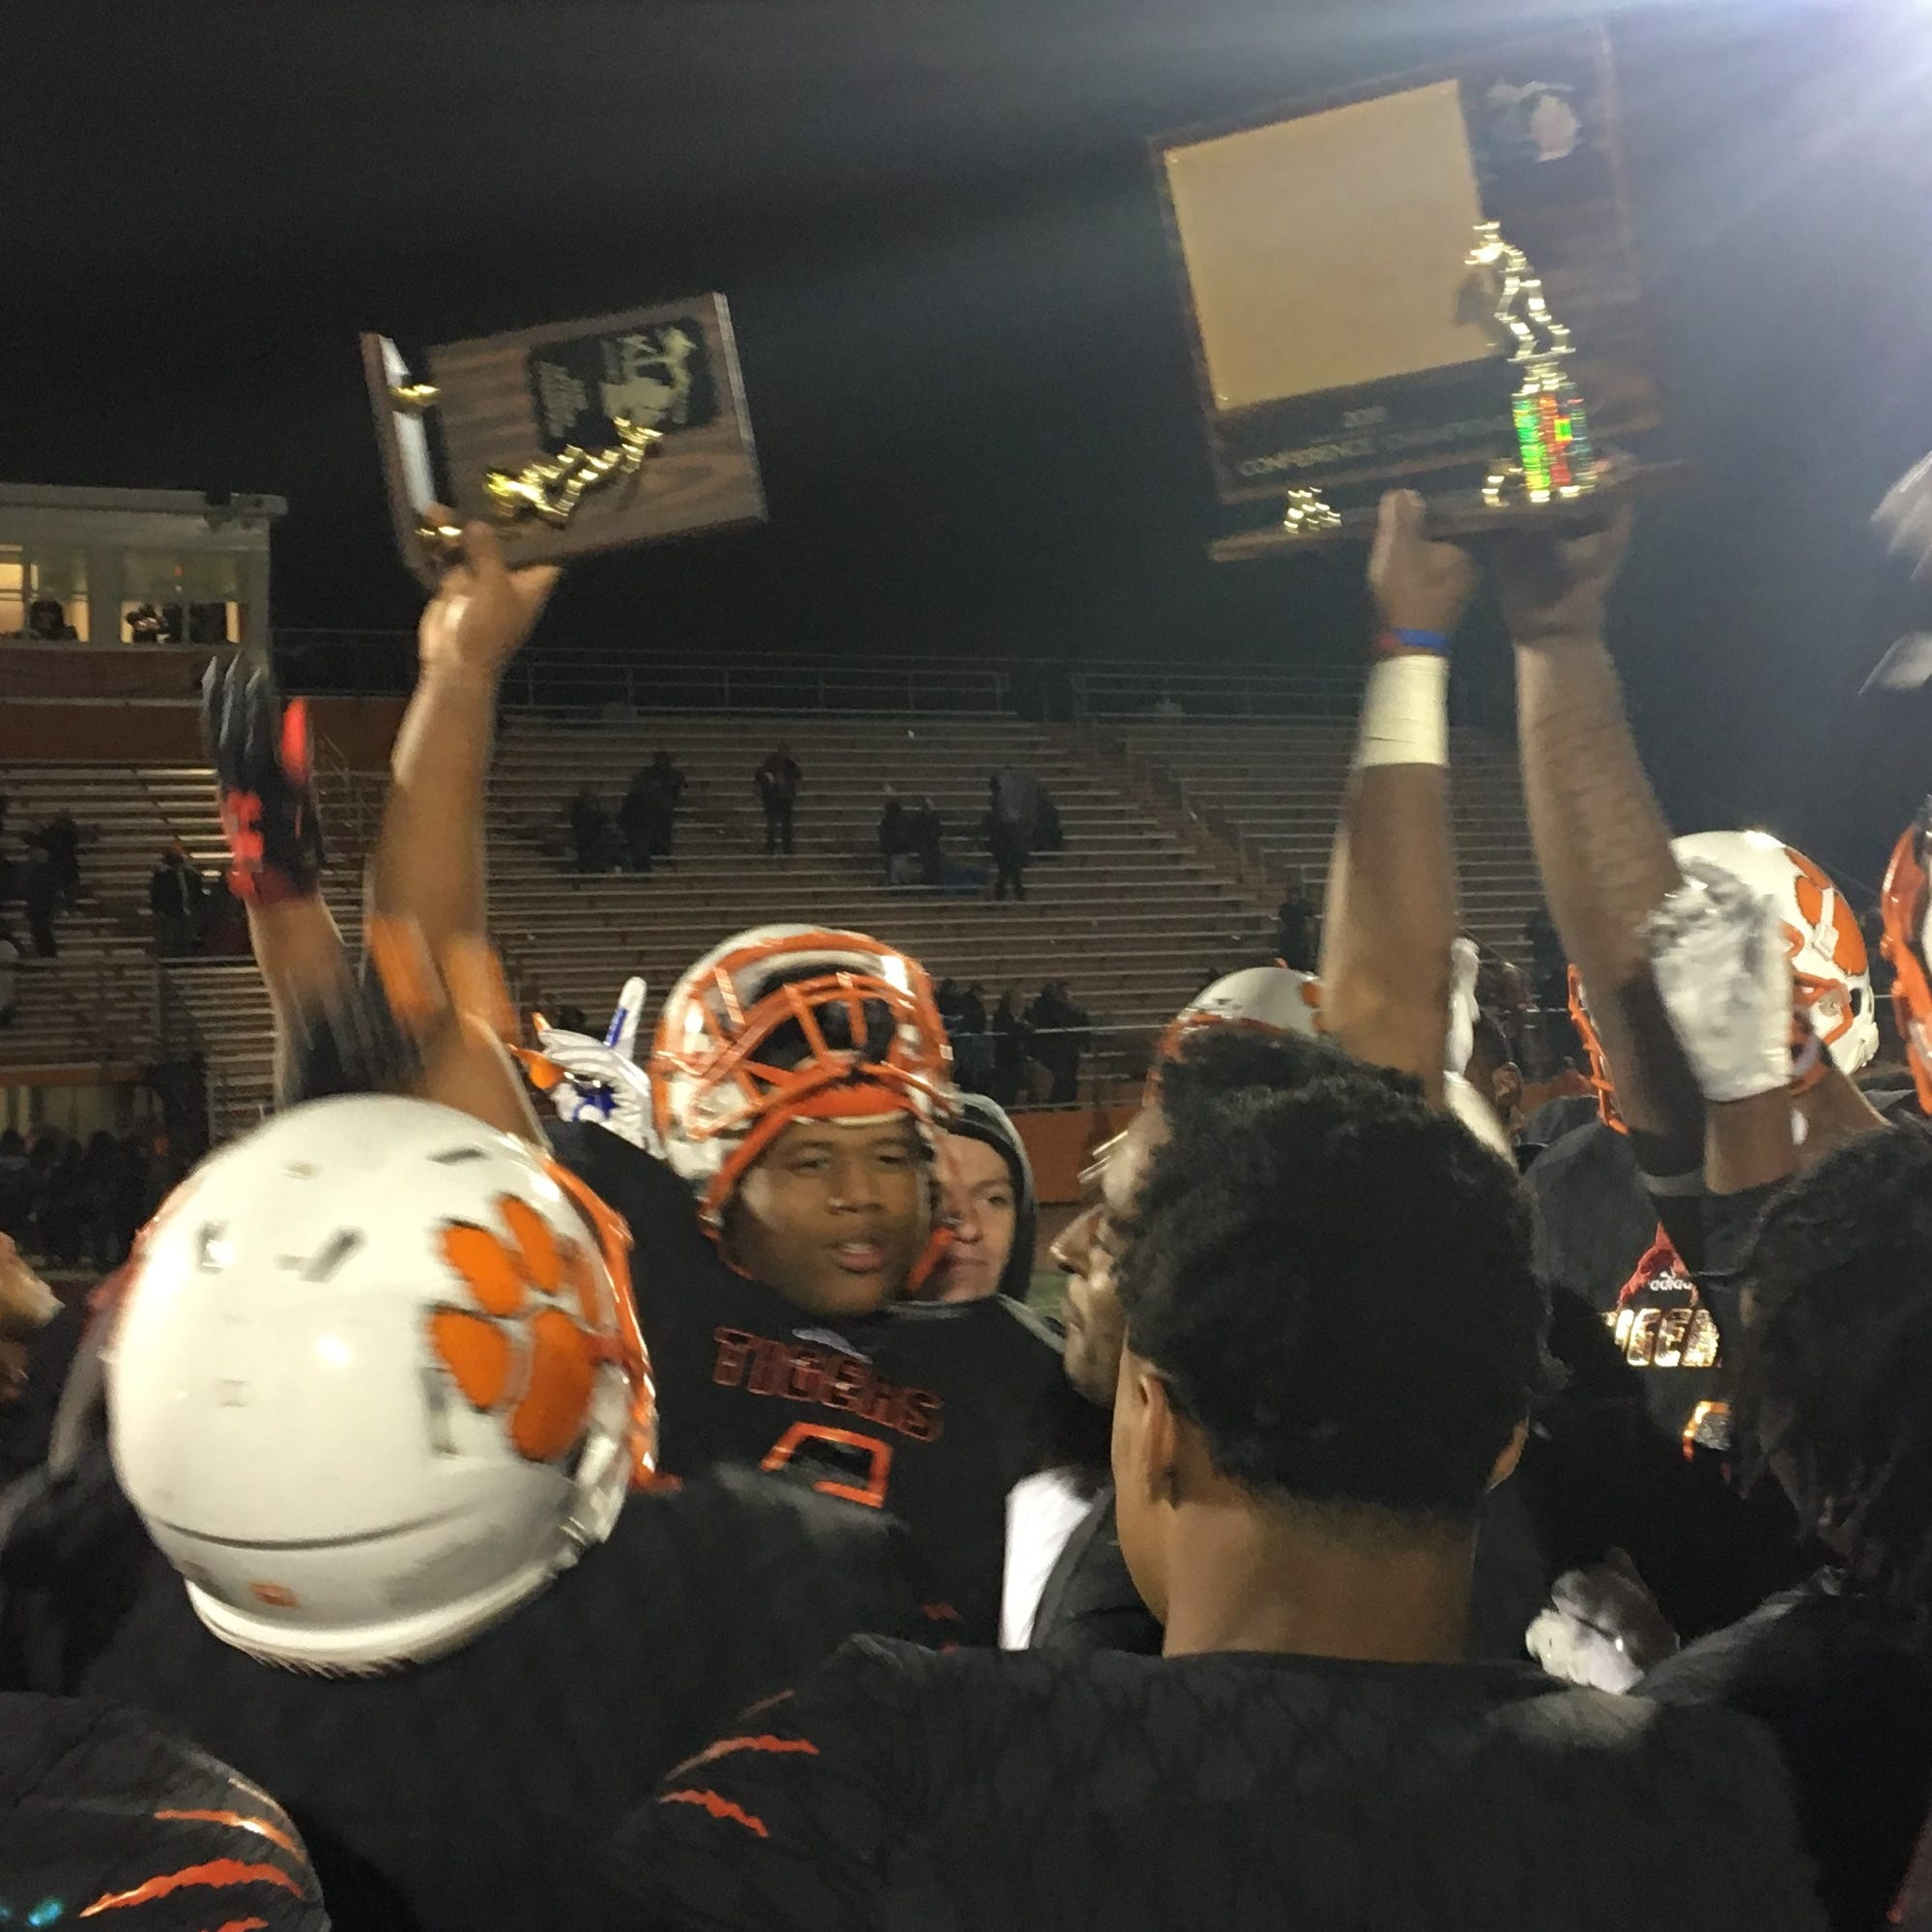 Brighton looks ahead after losing to Belleville in KLAA football championship game